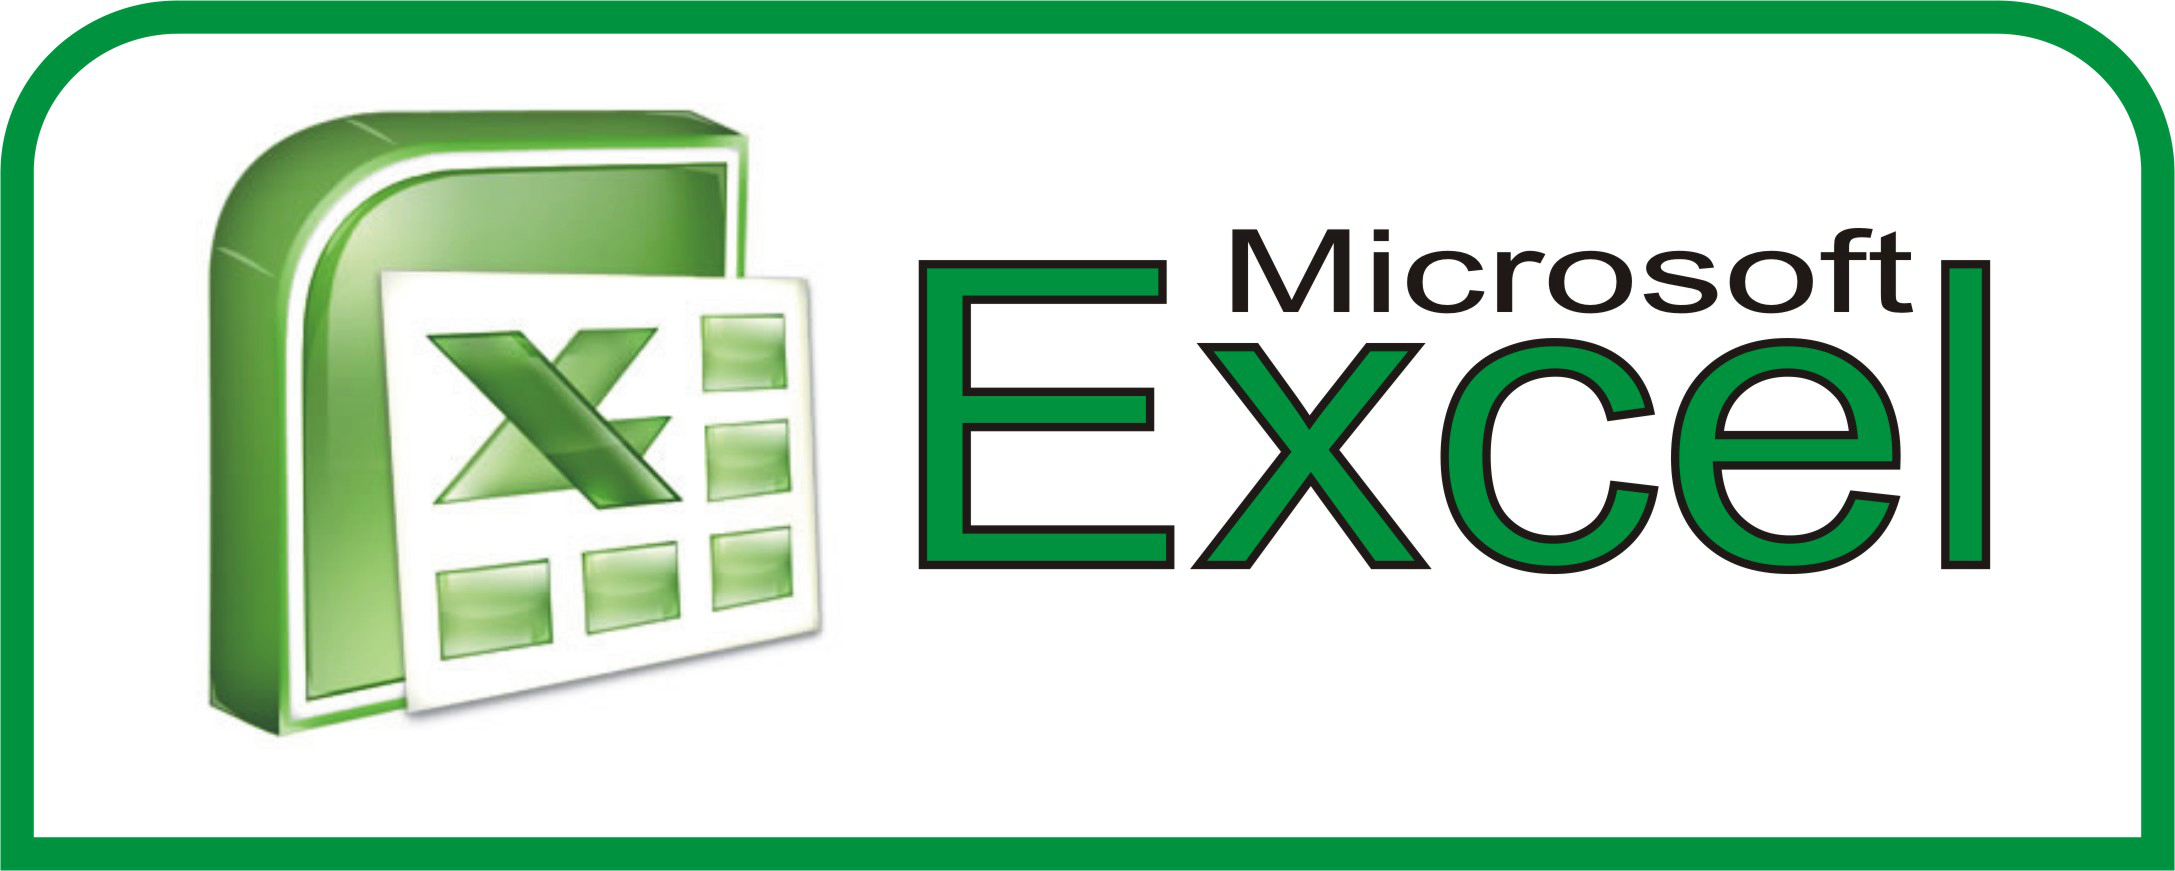 Ediblewildsus  Scenic  Excel Shortcuts You Probably Didnt Know About  Techdissected With Licious Generate Xml From Excel Besides Excel Forumulas Furthermore Powermap Excel  With Nice Weekly Employee Shift Schedule Template Excel Also Excel Formulas For Timesheets In Addition Convert Numbers To Words In Excel And Excel Worksheet Vs Workbook As Well As Make A Graph Excel Additionally Excel Count Selected Cells From Techdissectedcom With Ediblewildsus  Licious  Excel Shortcuts You Probably Didnt Know About  Techdissected With Nice Generate Xml From Excel Besides Excel Forumulas Furthermore Powermap Excel  And Scenic Weekly Employee Shift Schedule Template Excel Also Excel Formulas For Timesheets In Addition Convert Numbers To Words In Excel From Techdissectedcom